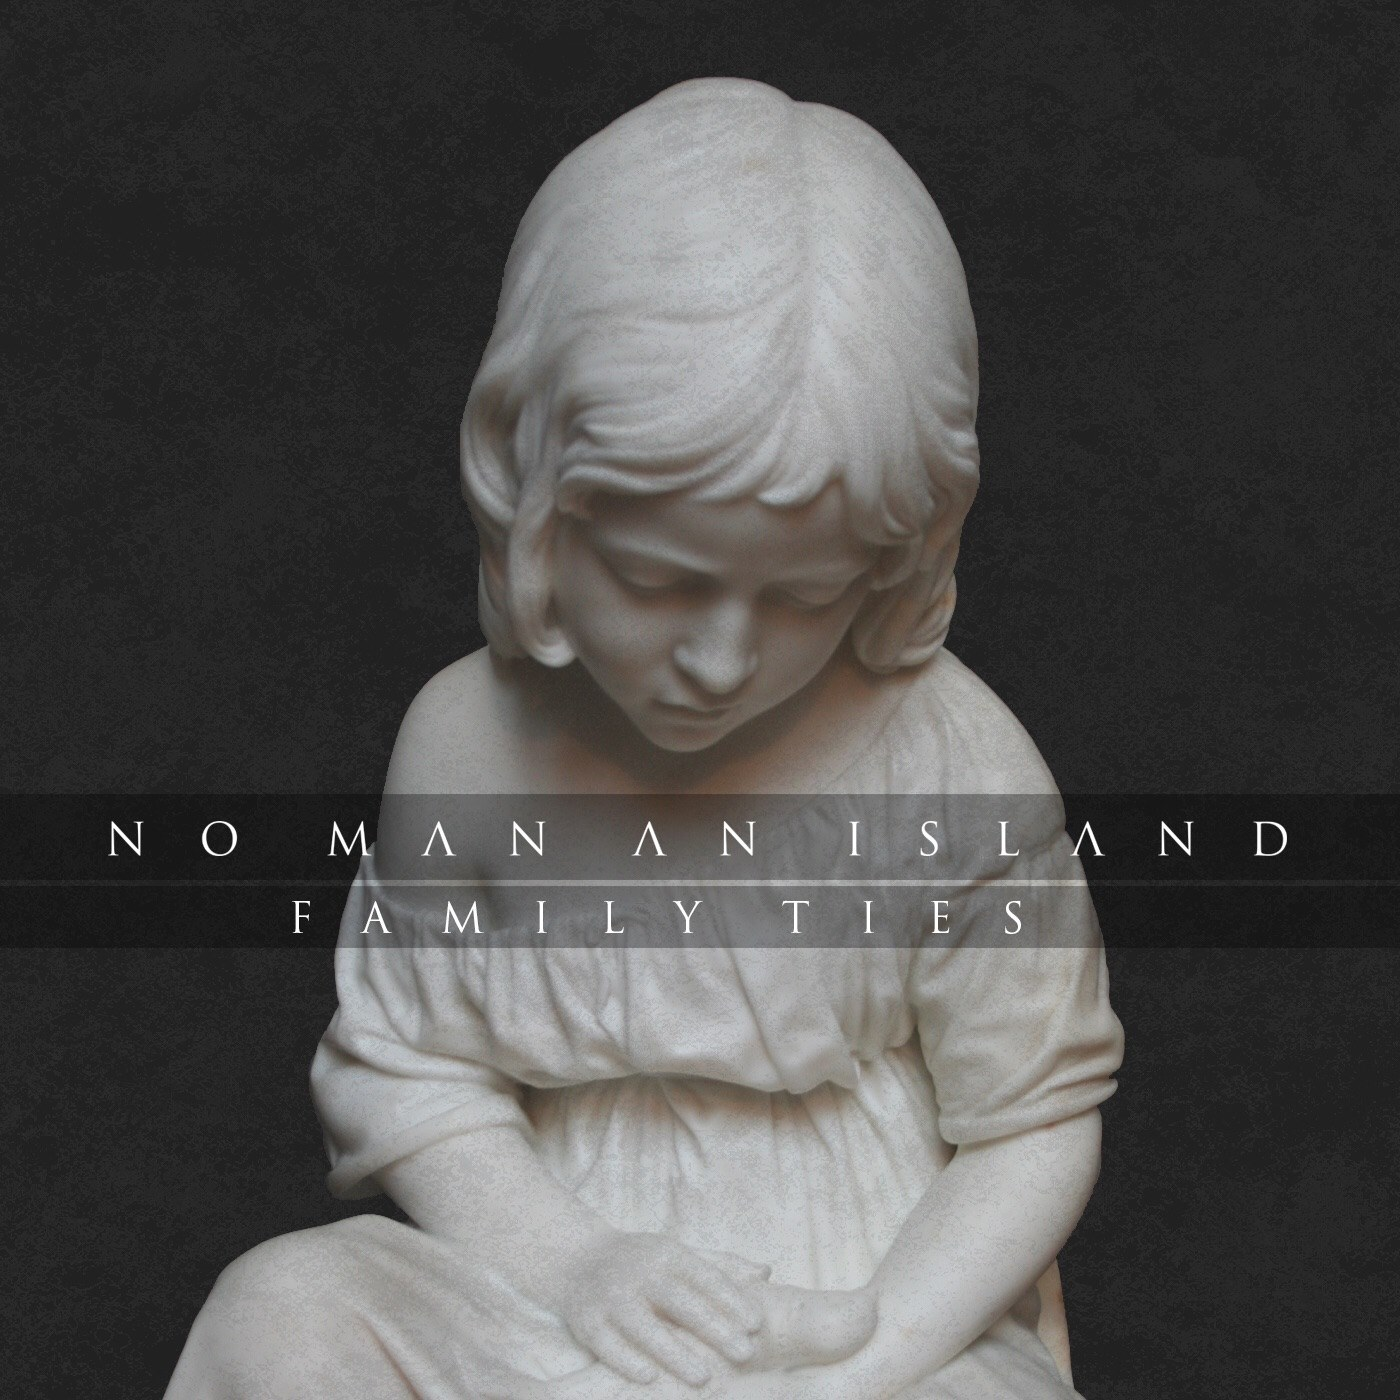 No Man An Island - Family Ties (Instrumental) [single] (2015)